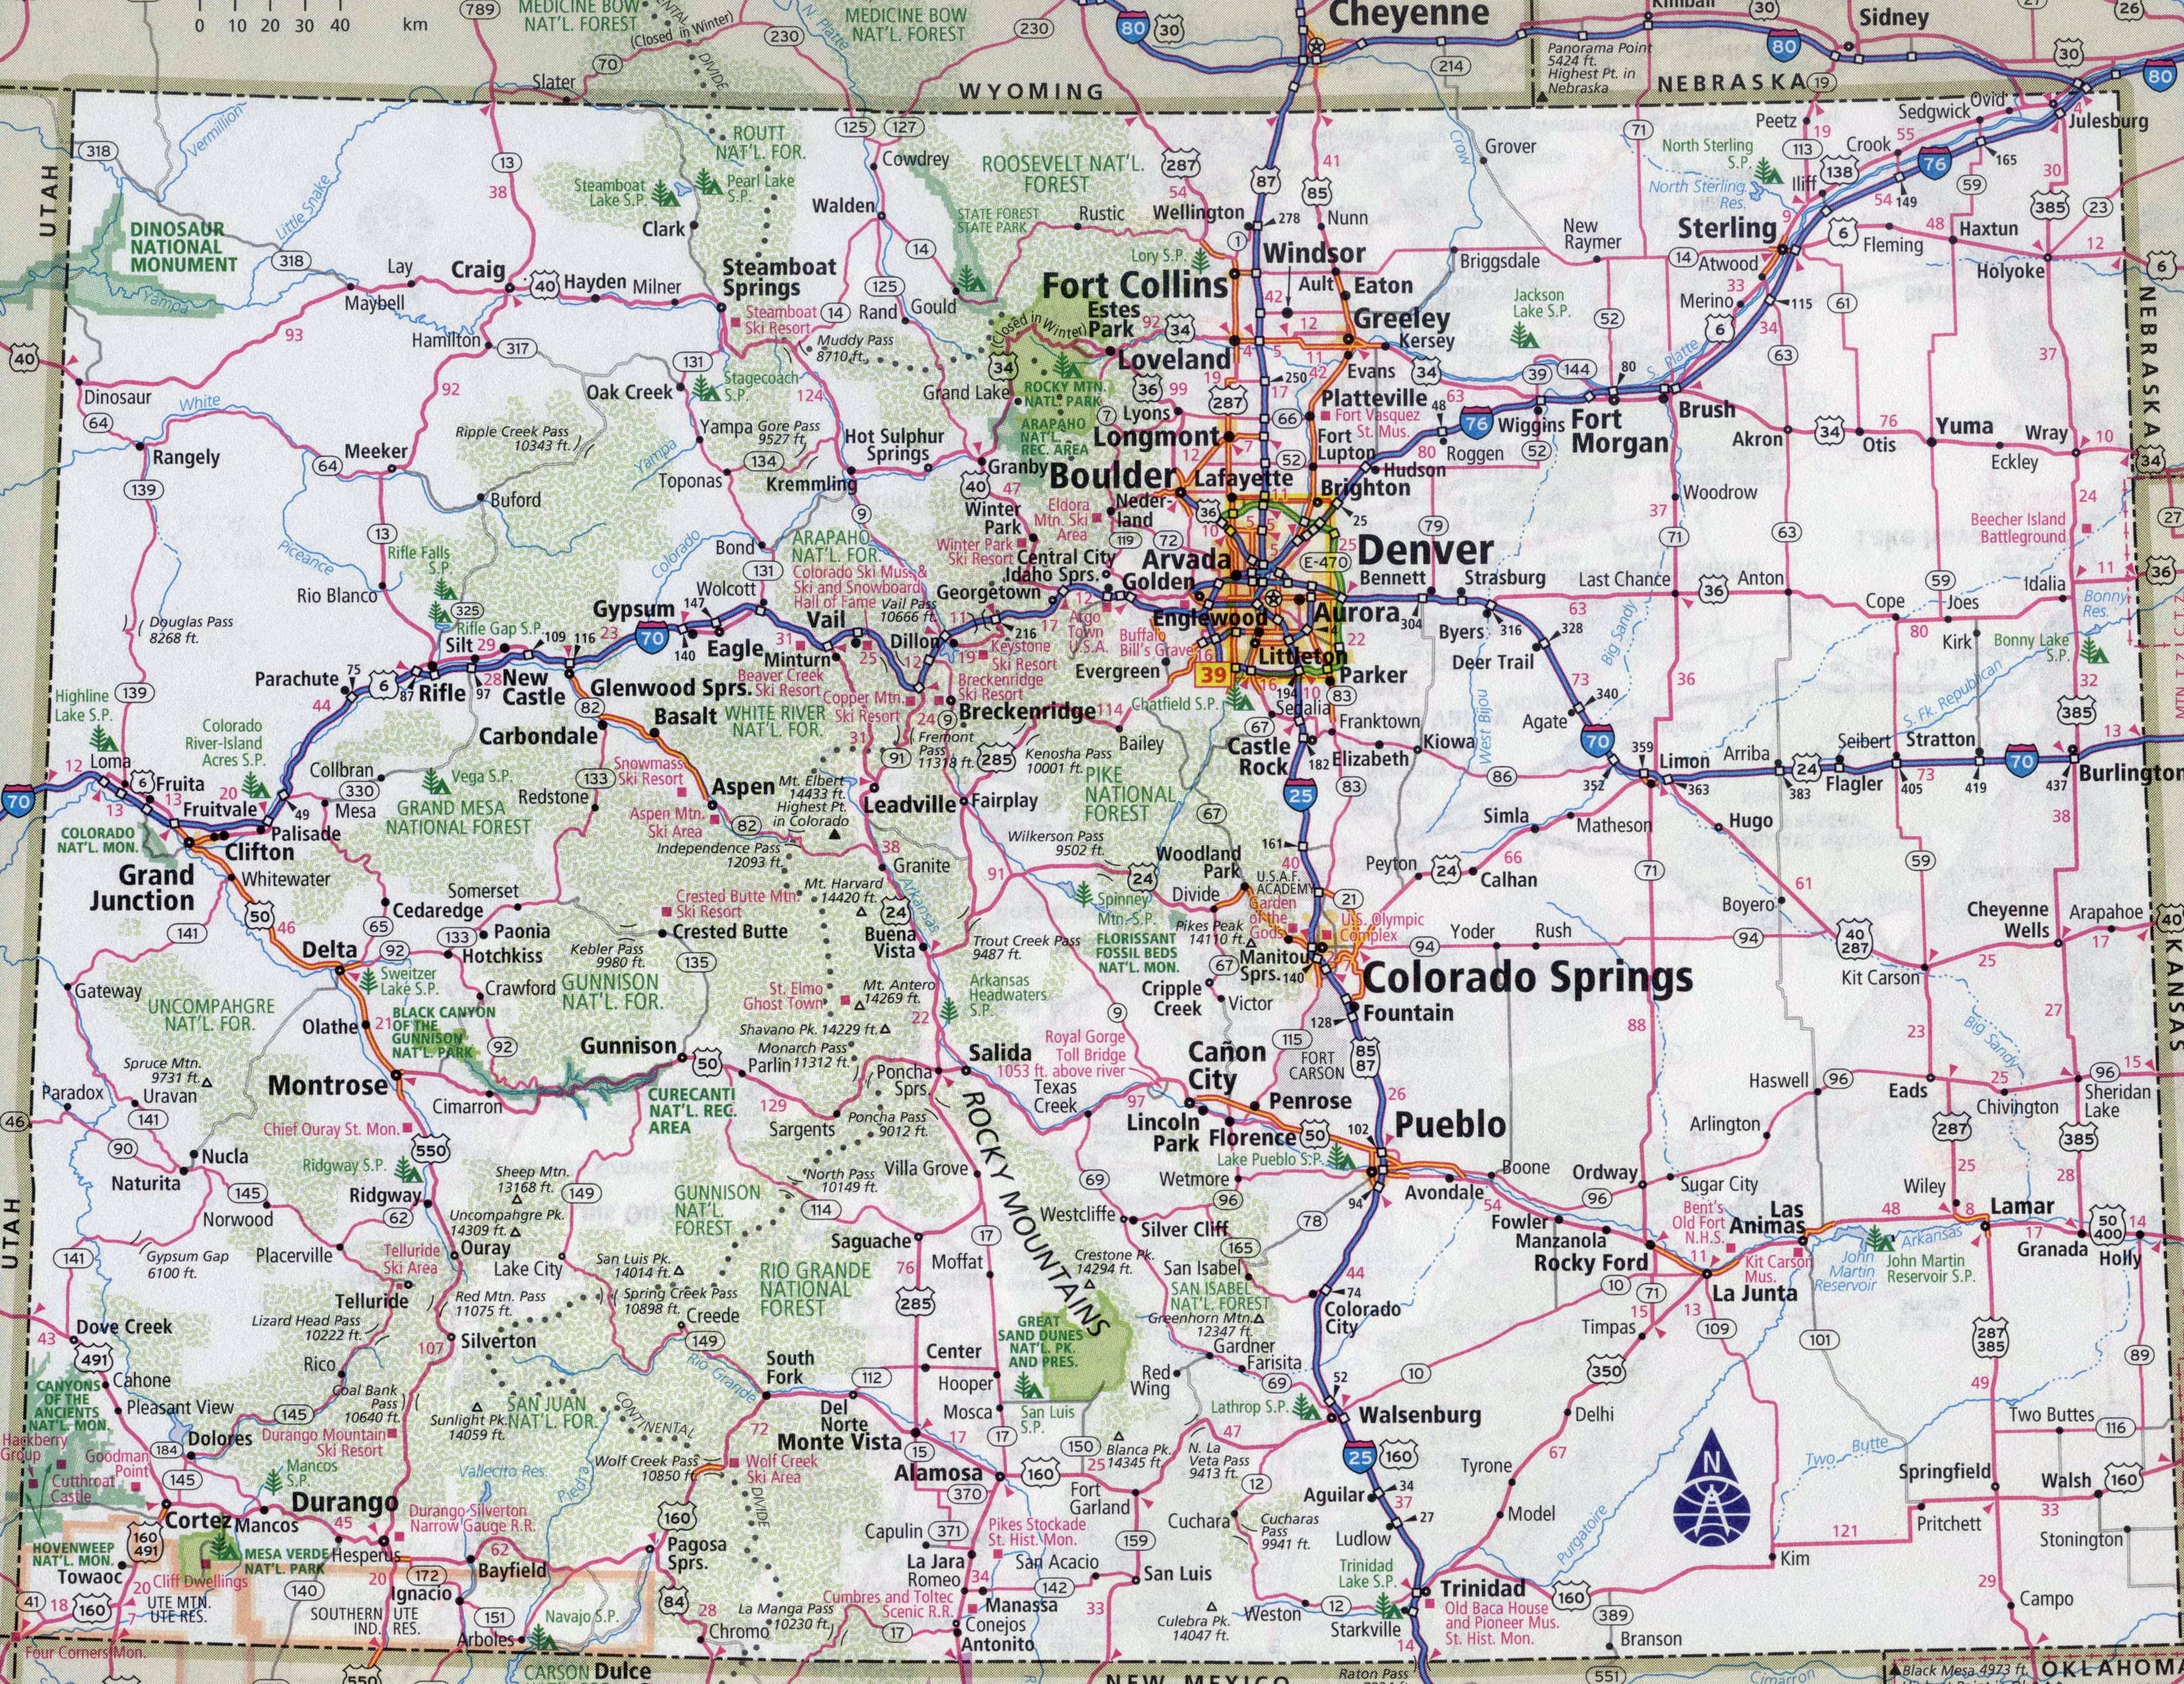 Large Detailed Roads And Highways Map Of Colorado State With All - Detailed usa map with states and cities